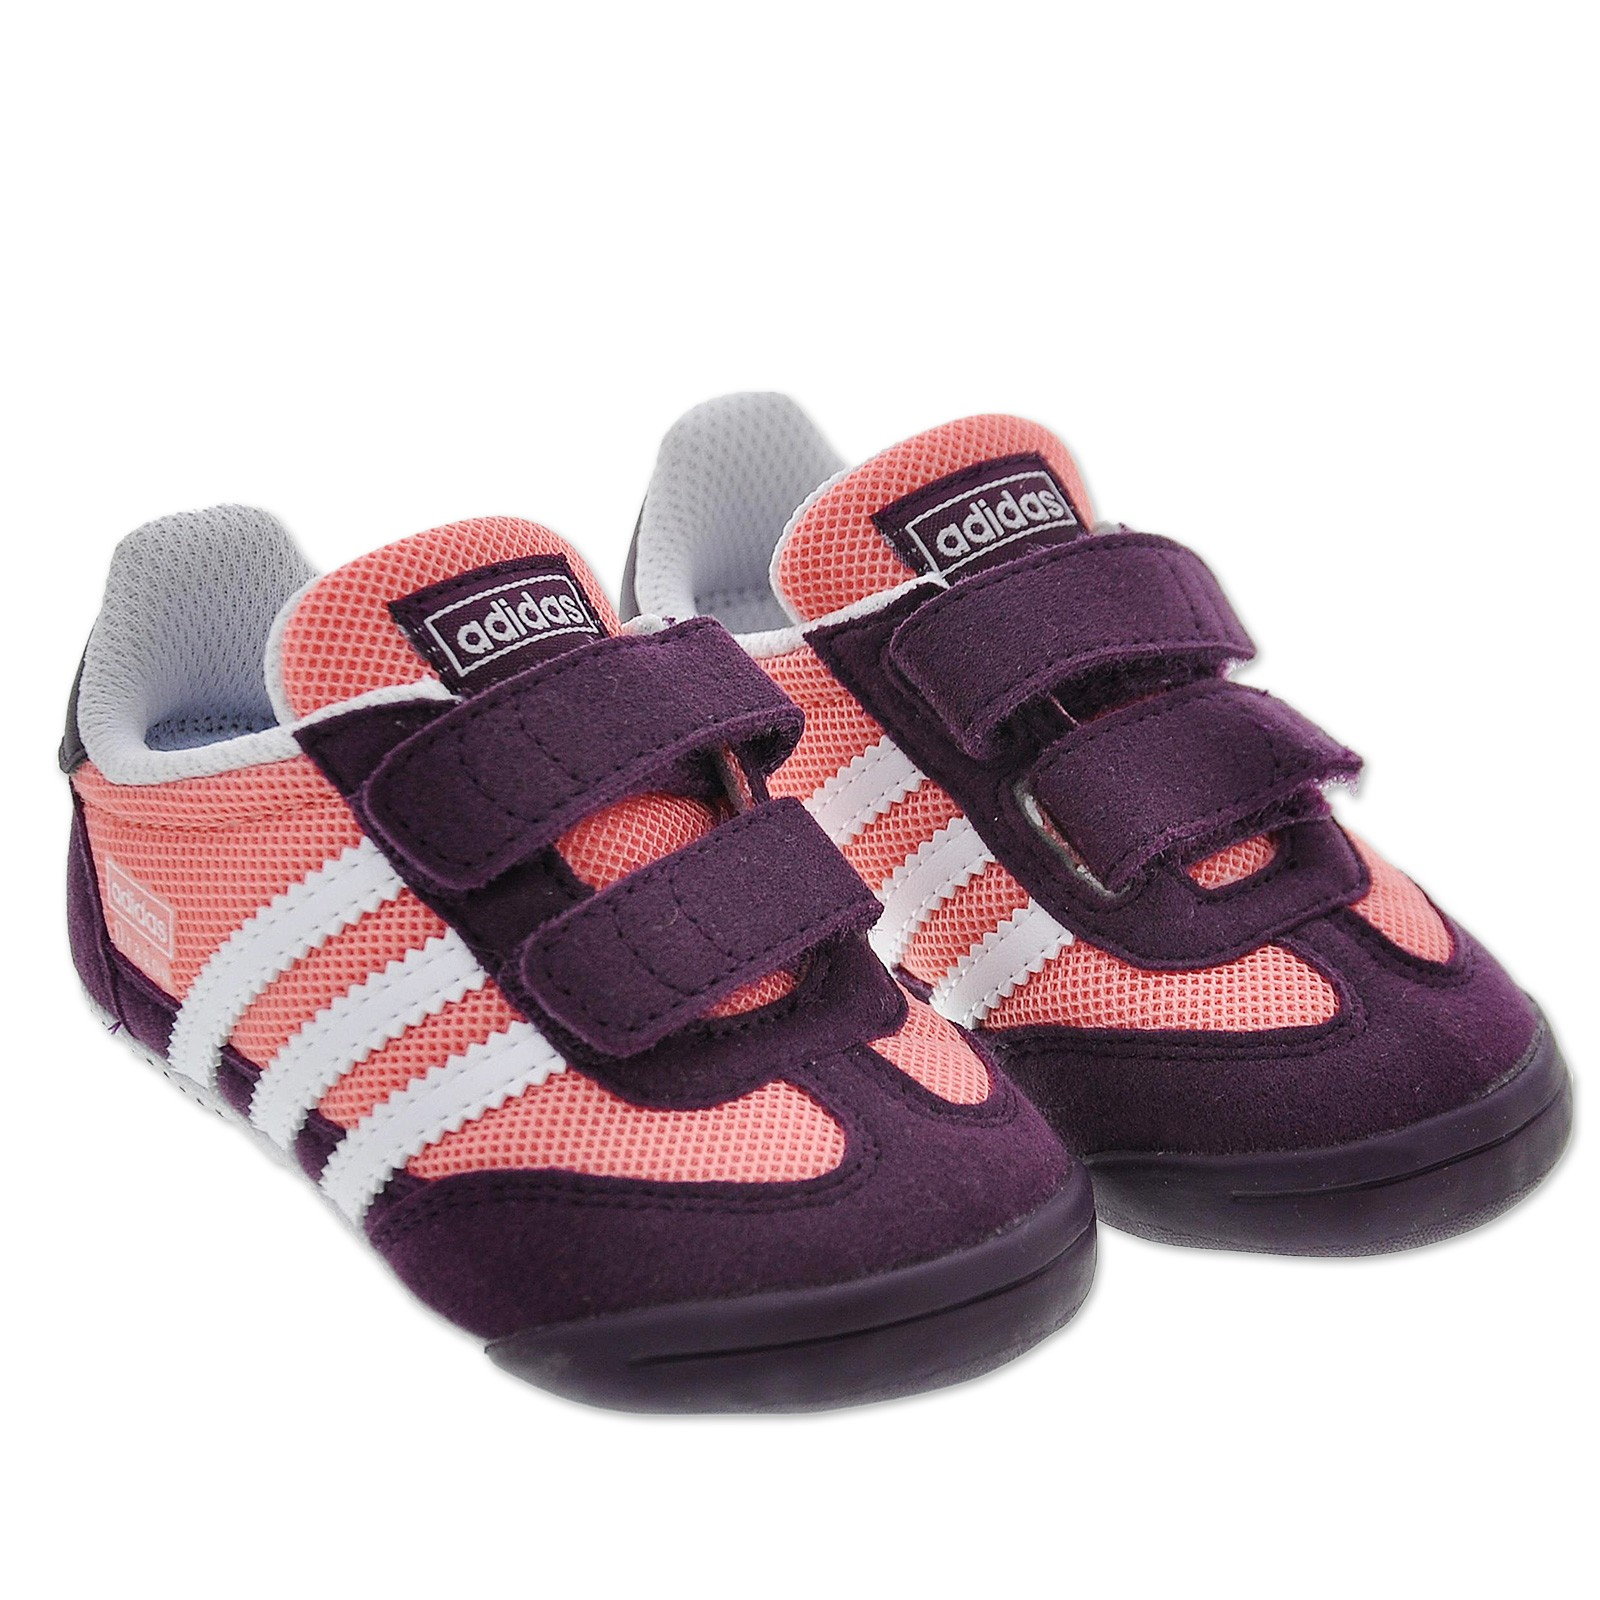 Details about Adidas Originals Dragon Baby Walking Learning Shoes Baby  Krabbelschuhe Peach Pink- show original title